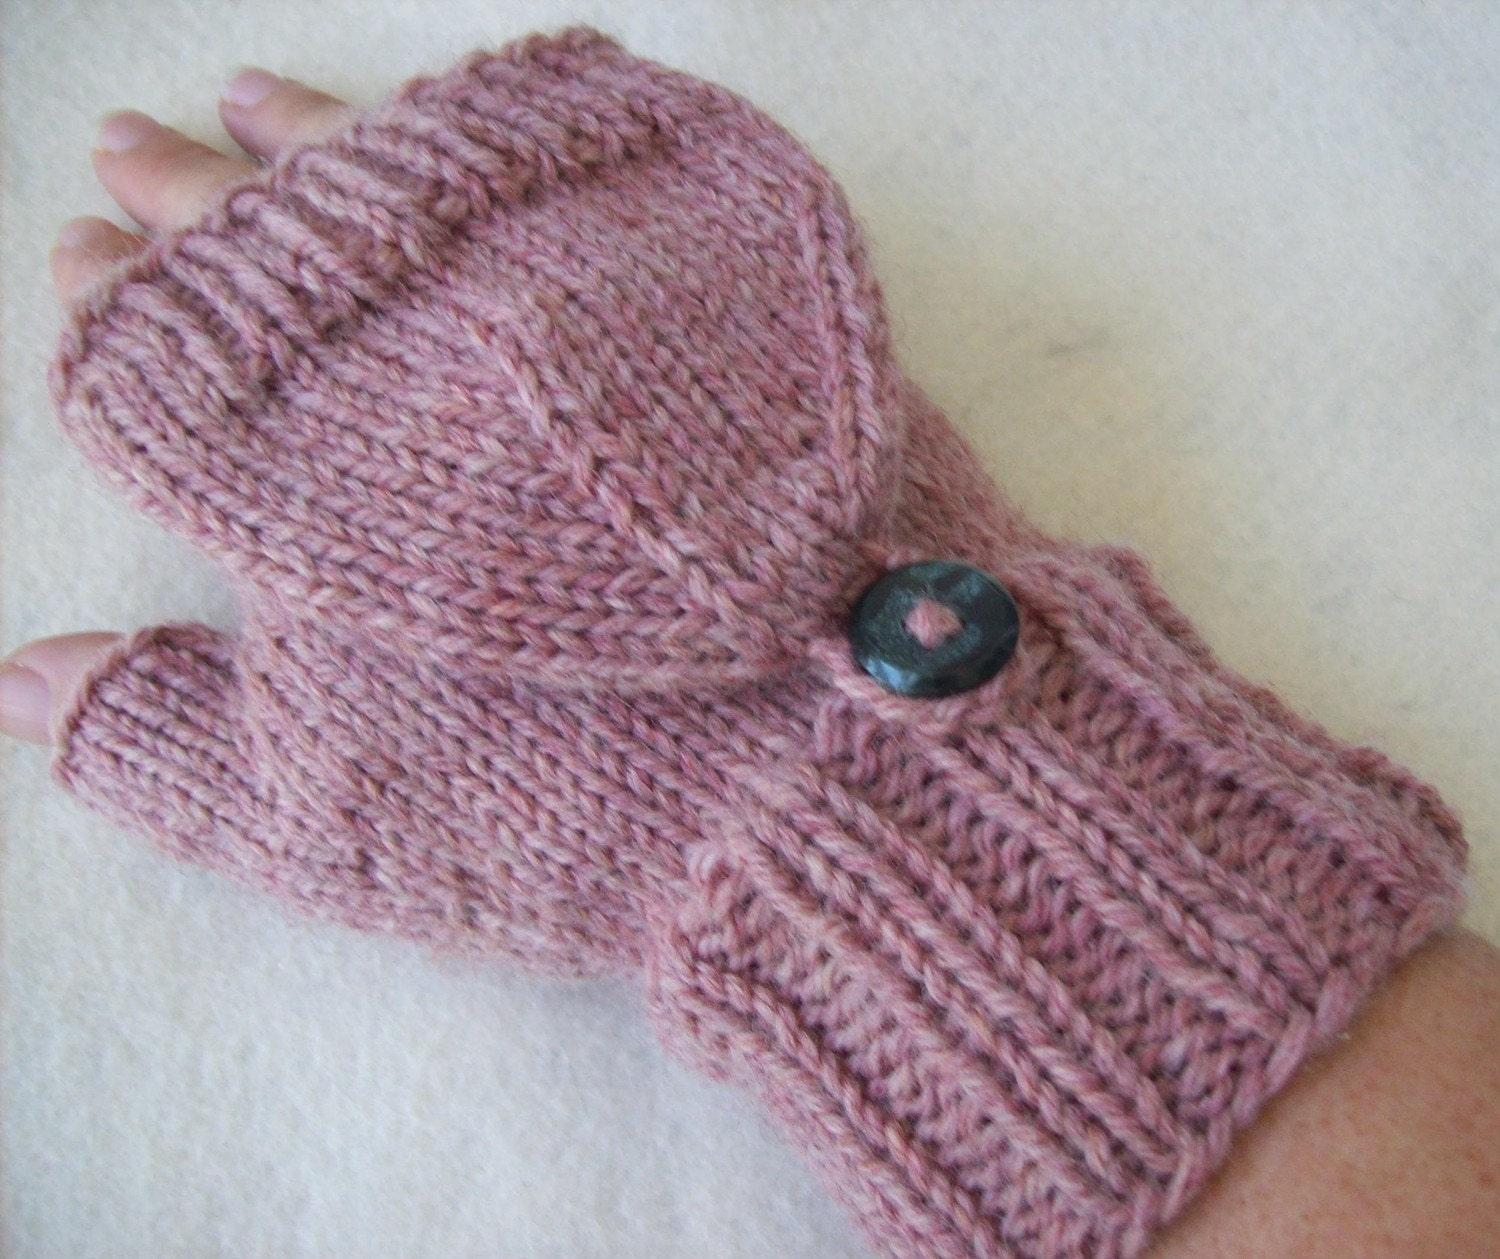 Knitting Pattern For Mittens With Flaps : Redirecting